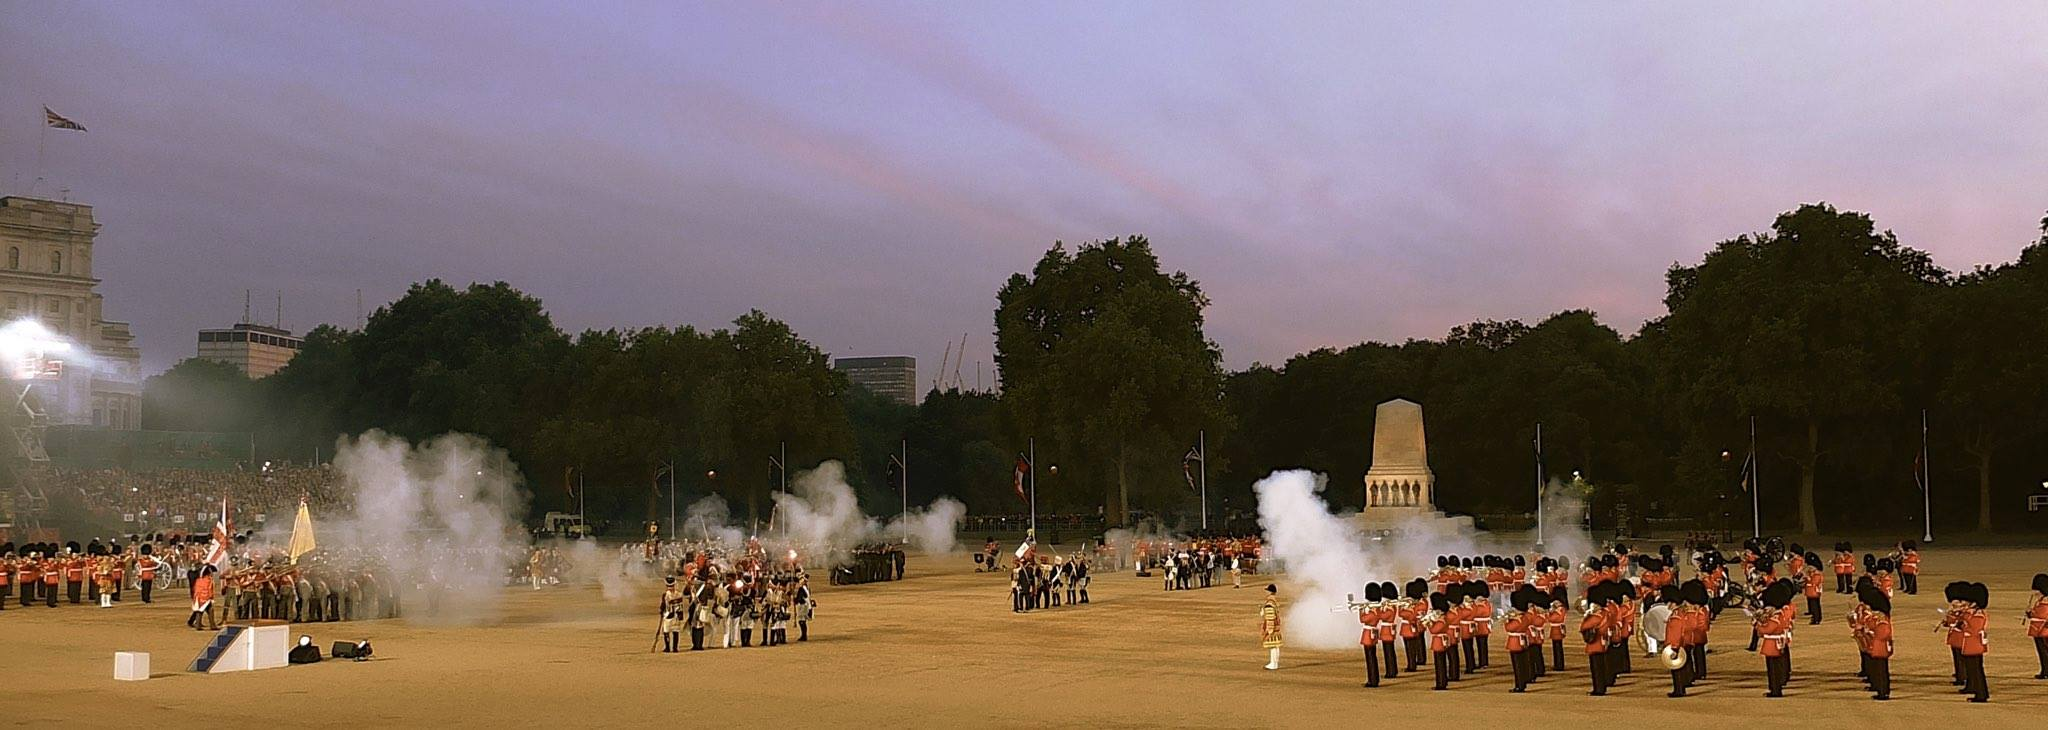 Waterloo_remembered_2015_200_Years_Horse_Guards